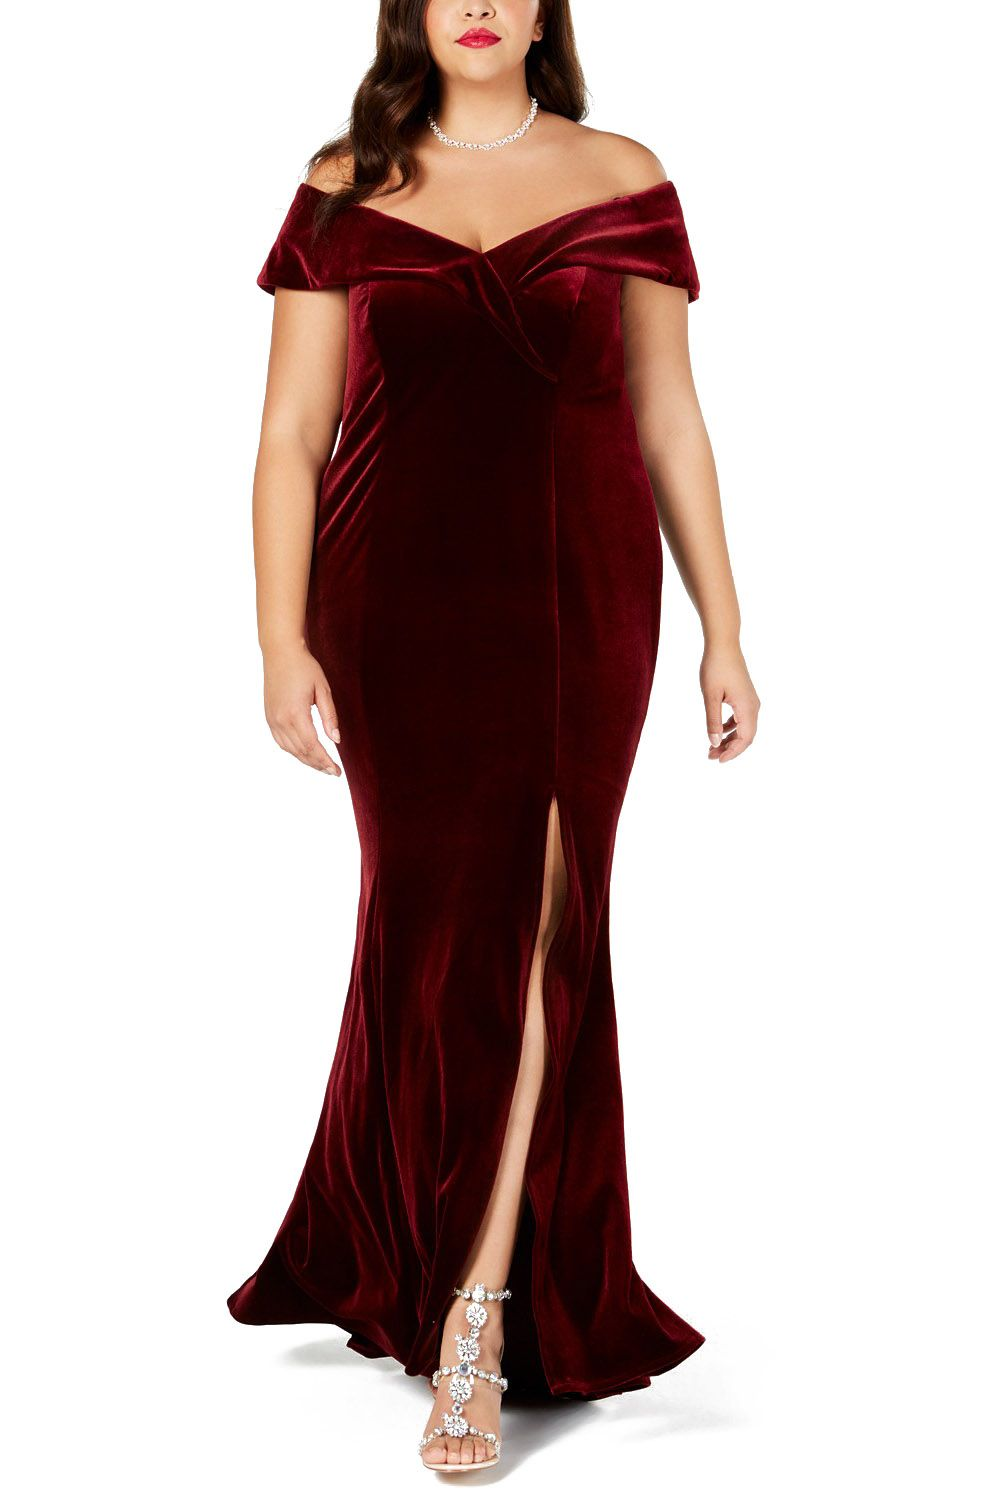 Red Gown Off The Shoulder Velvet Plus Size Evening Party Dress Plus Size Party Dresses Plus Size Gowns [ 1500 x 1001 Pixel ]